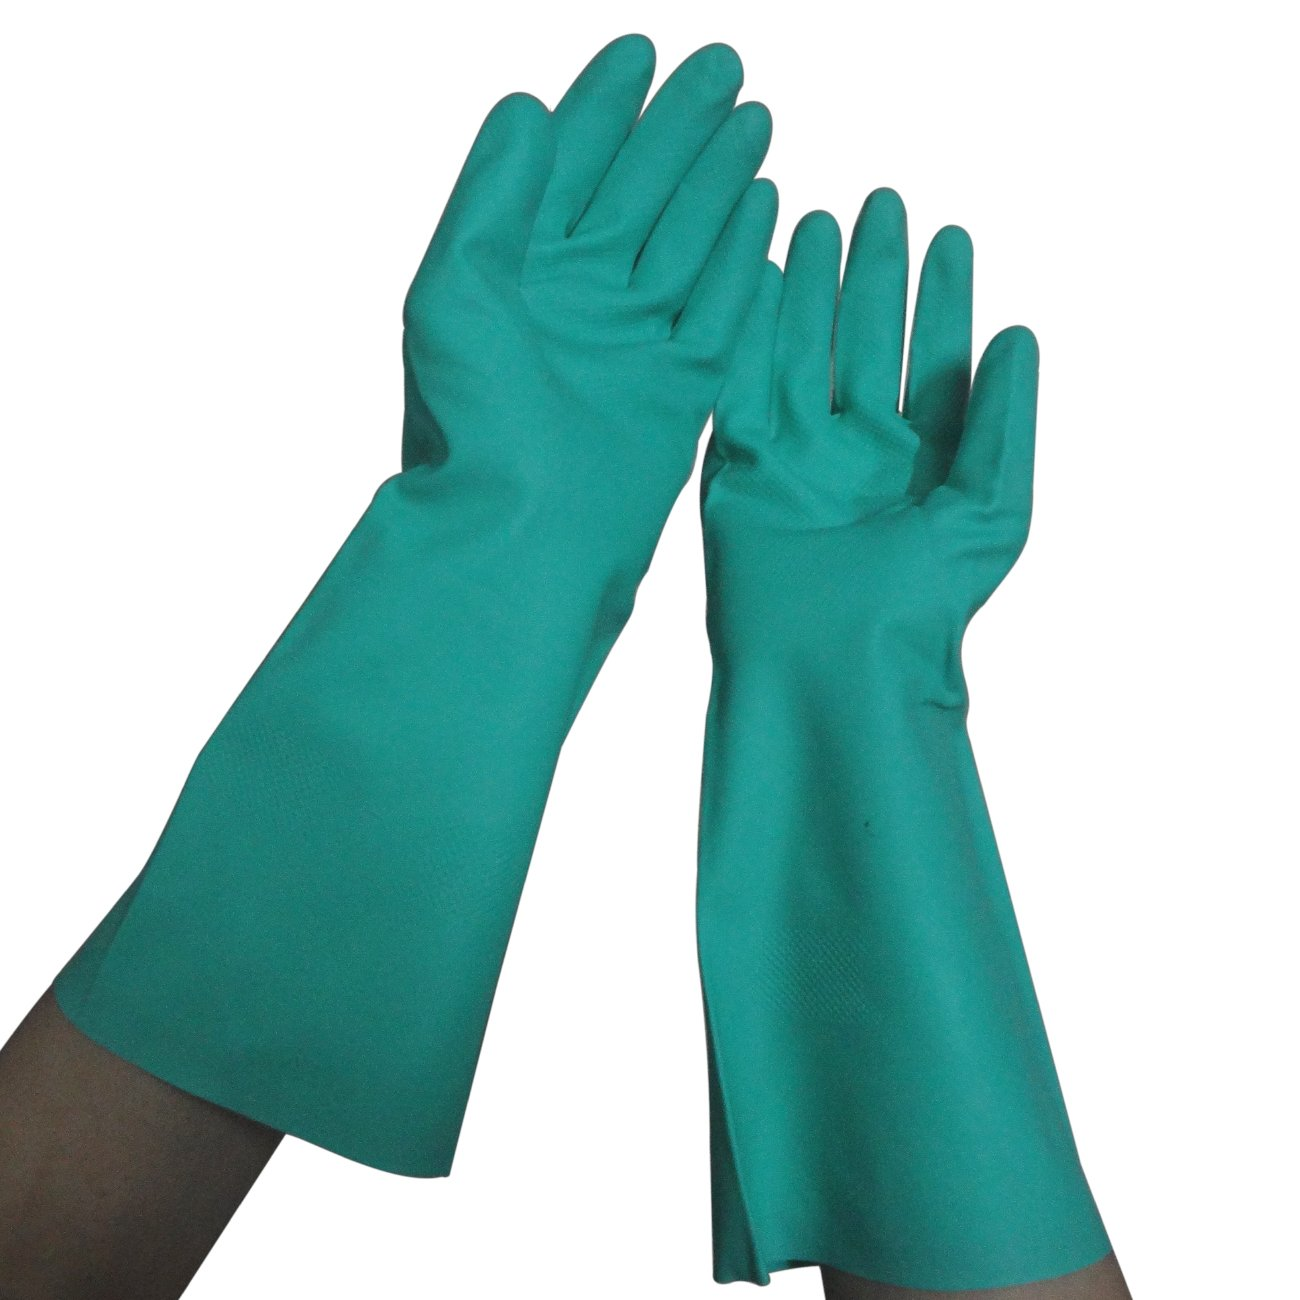 Tripop Heavy-Duty Nitrile Gloves, Household Cleaning Gloves with Effective Resistance to Oil, Acid, Alkali & Solvent (Green, Large)